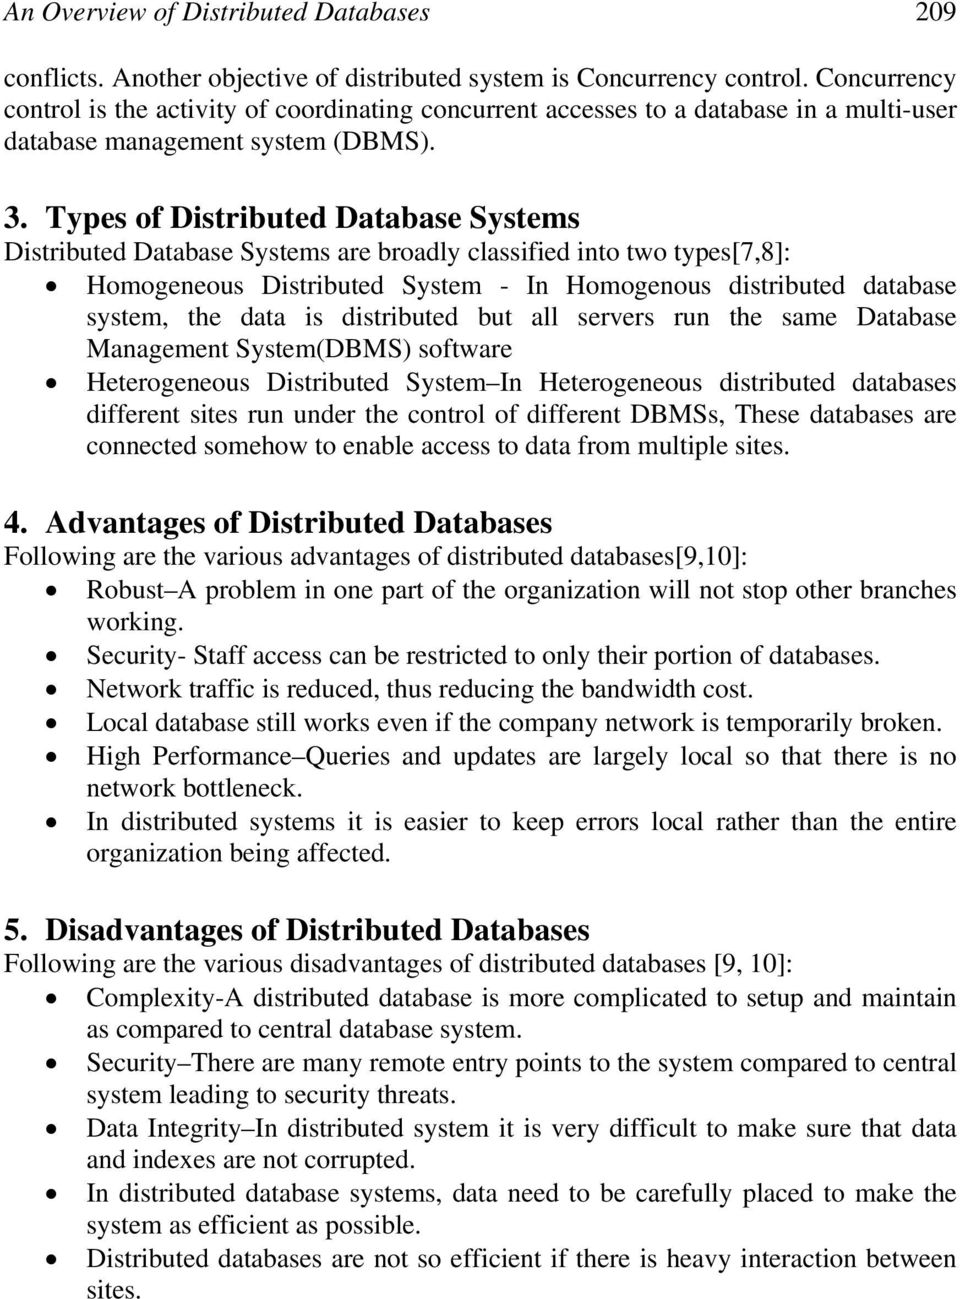 Types of Distributed Database Systems Distributed Database Systems are broadly classified into two types[7,8]: Homogeneous Distributed System - In Homogenous distributed database system, the data is